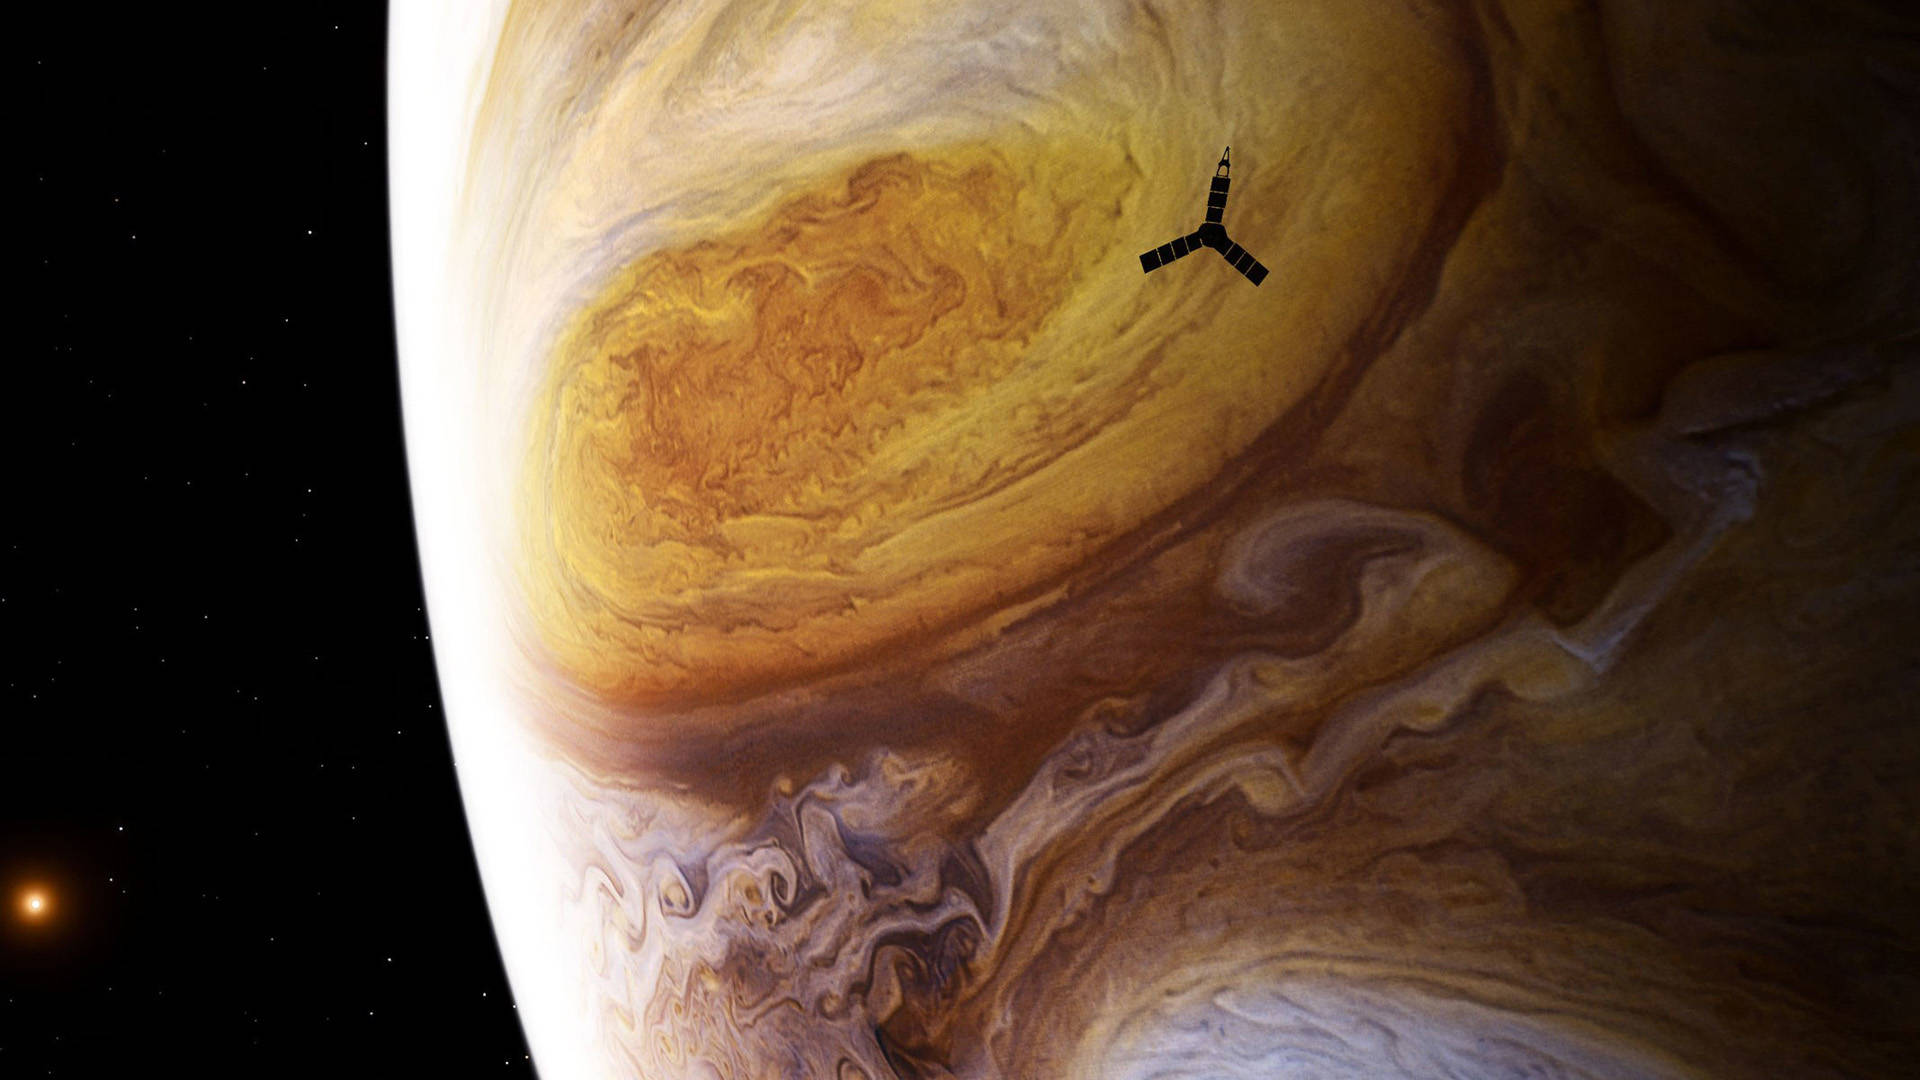 Depiction of NASA's Juno spacecraft during its close encounter with Jupiter's famous Great Red Spot.